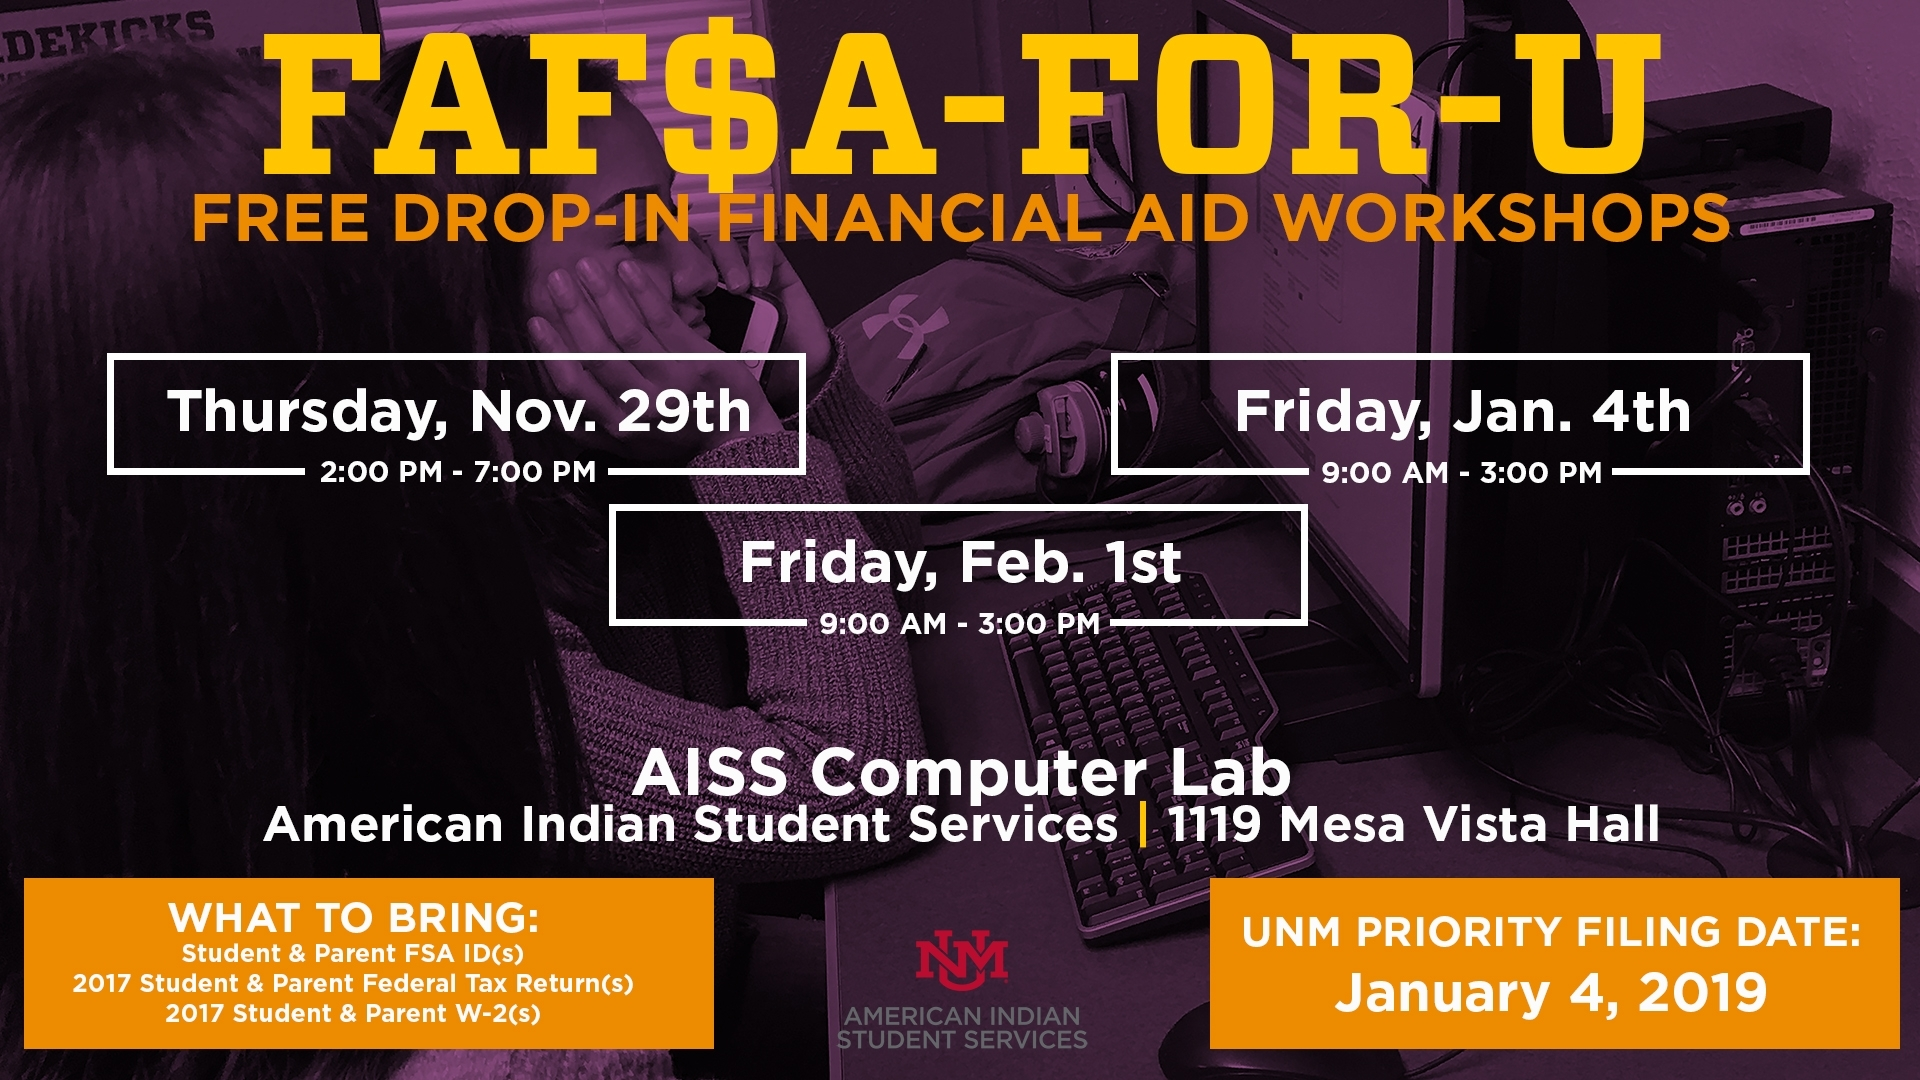 Unm Events Calendar - Faf$A-For-U Workshop with Unm Calendar 2019-2020